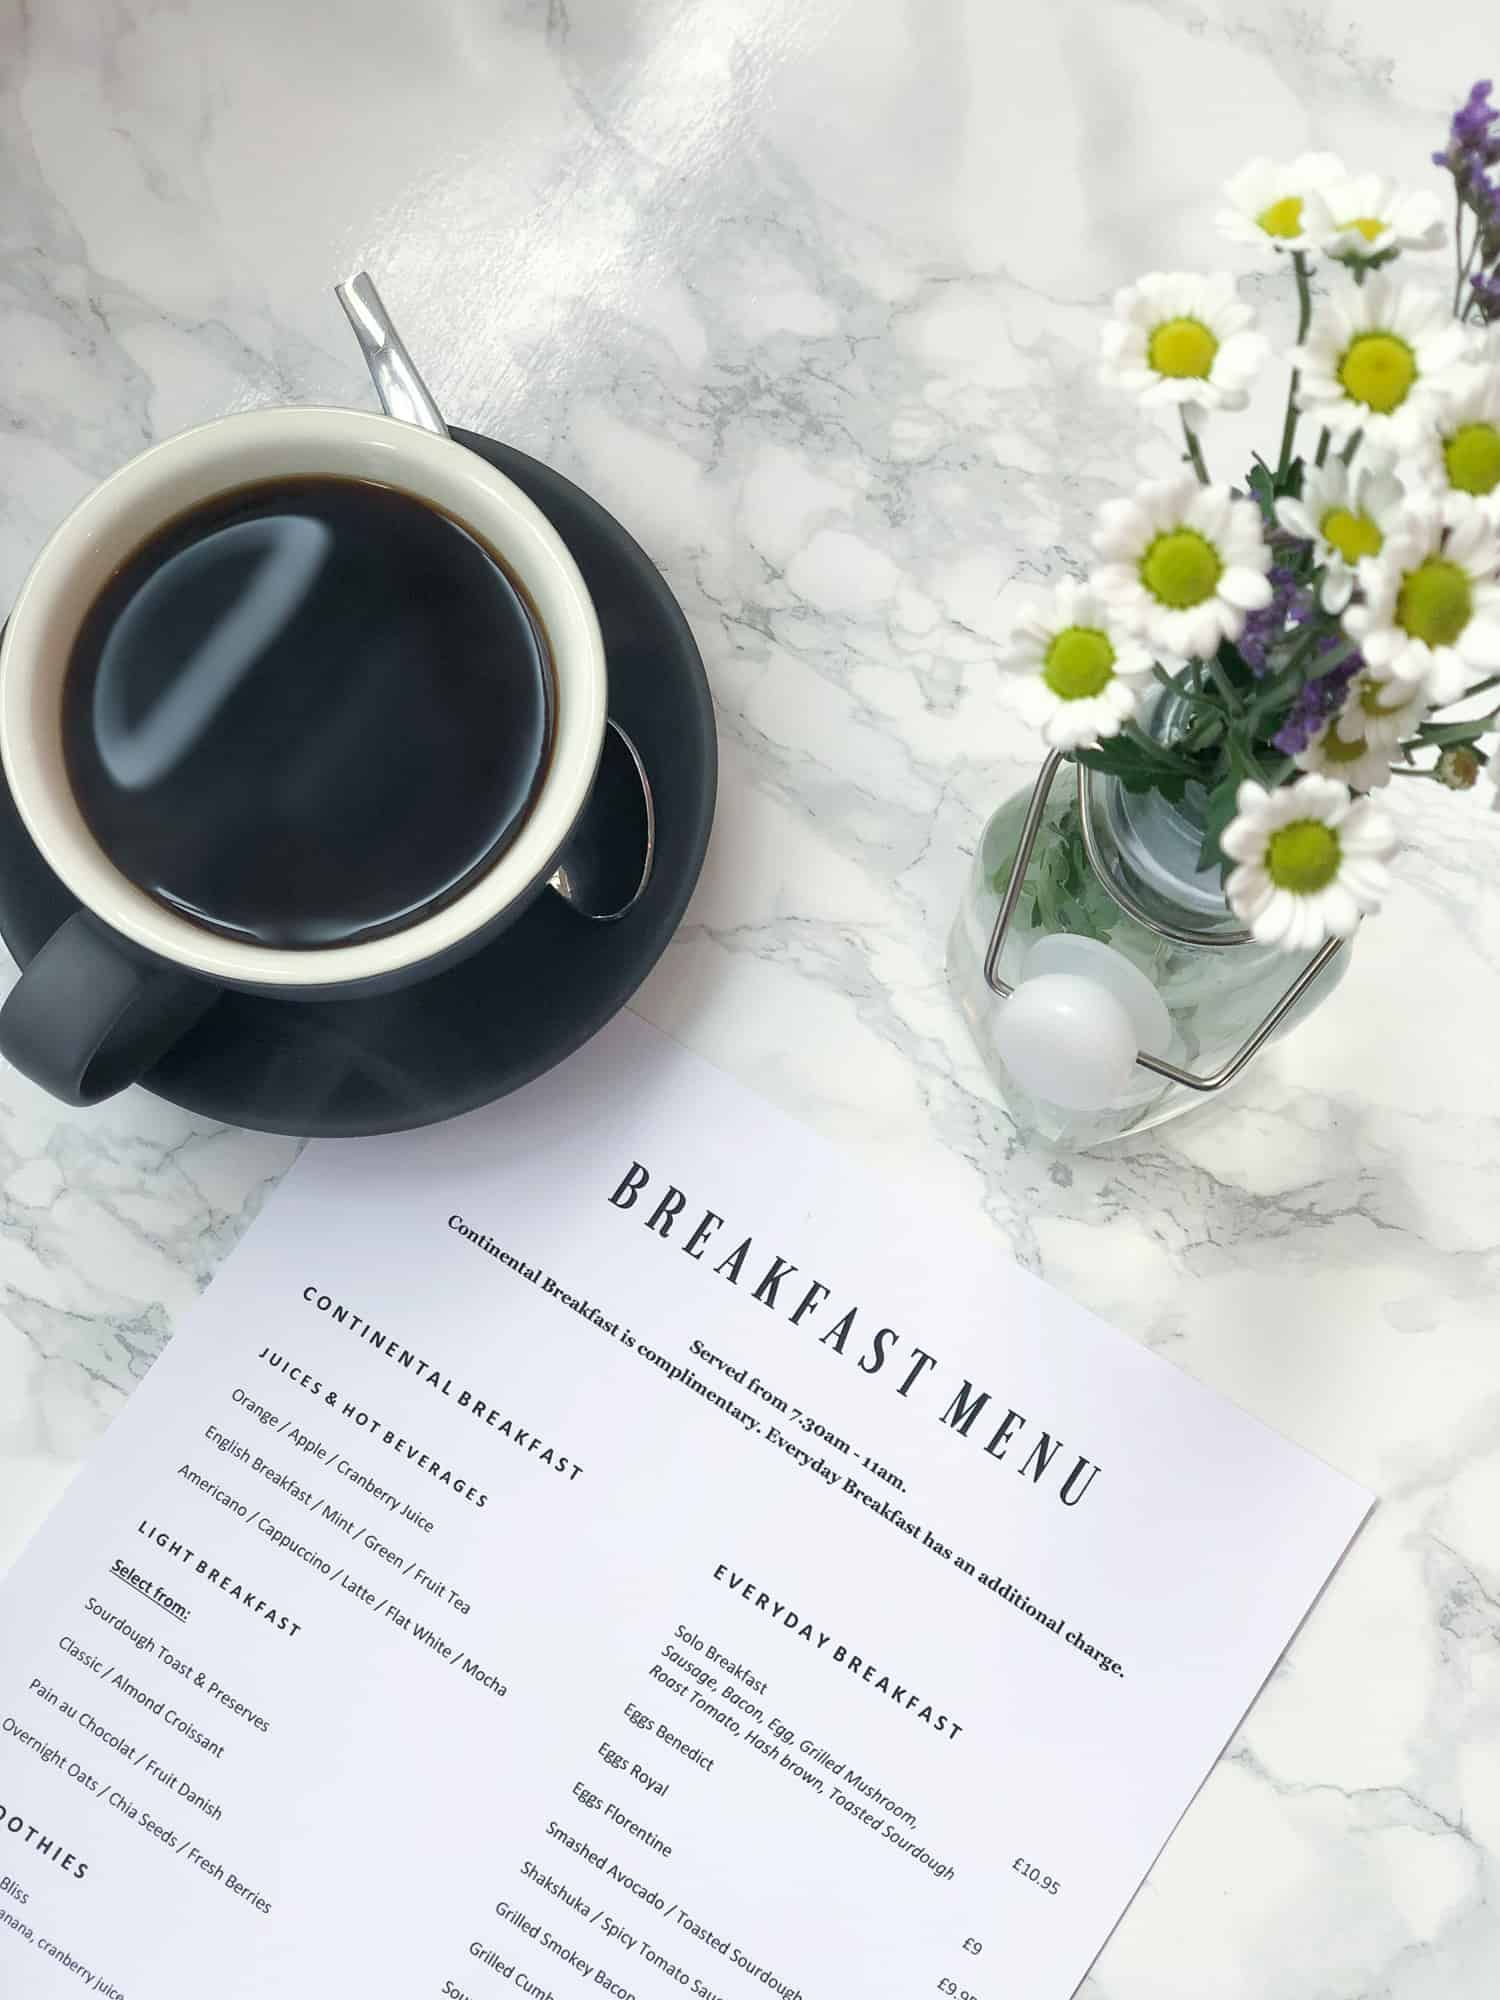 England - breakfast menu and coffee at the Kingston 1 Hotel